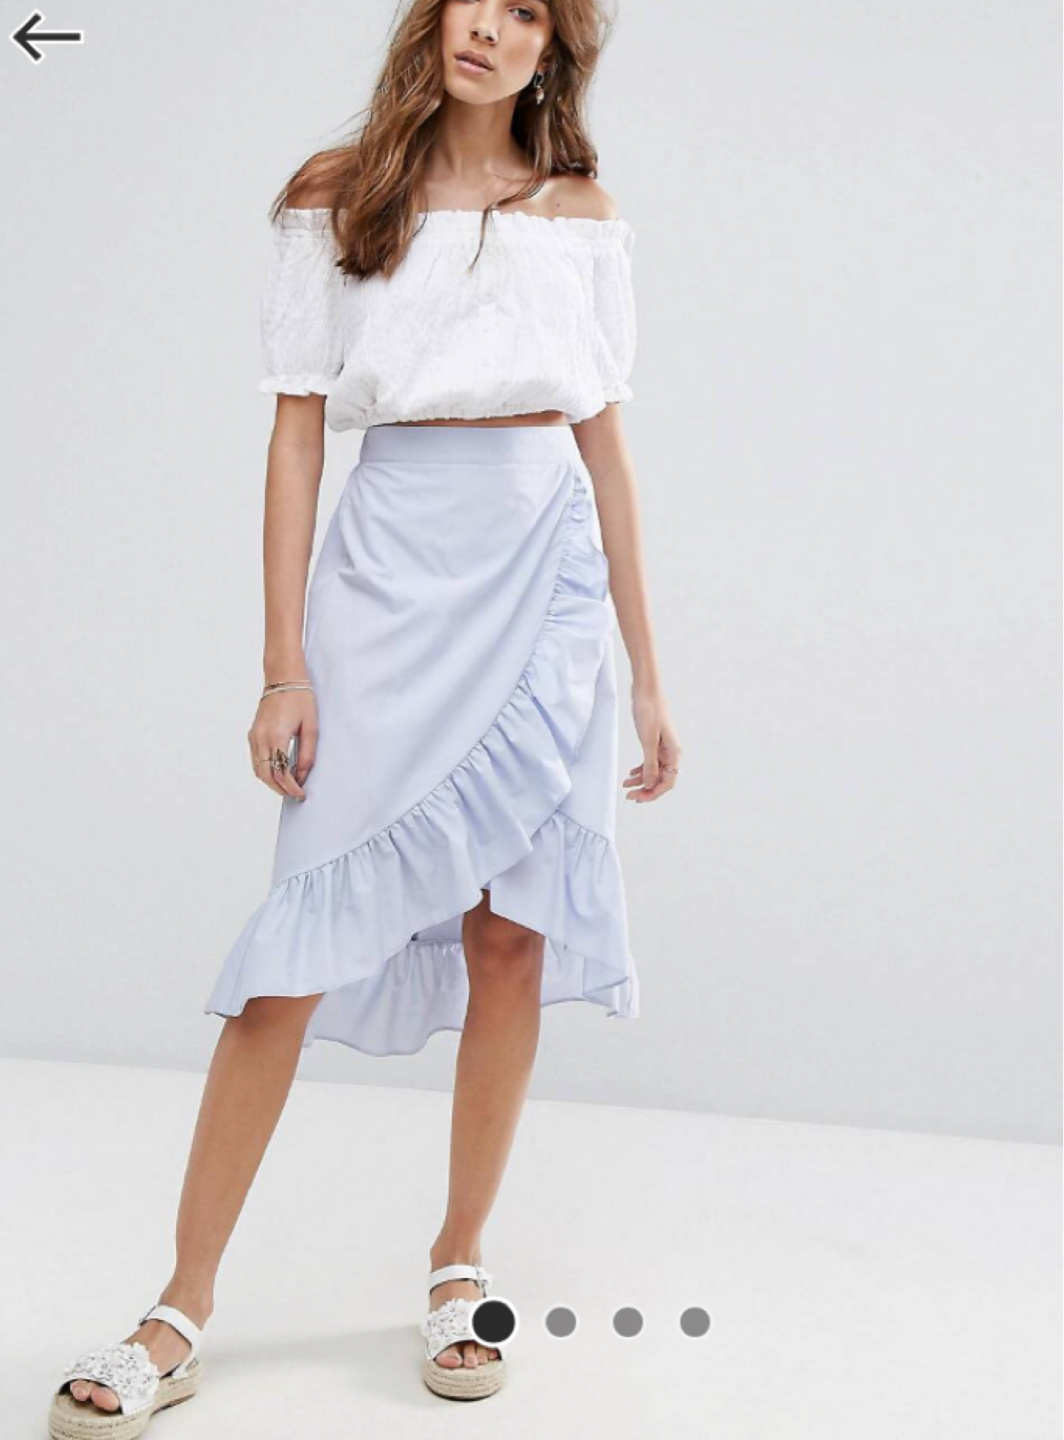 Women's skirts - MISS SELFRIDGE photo 3